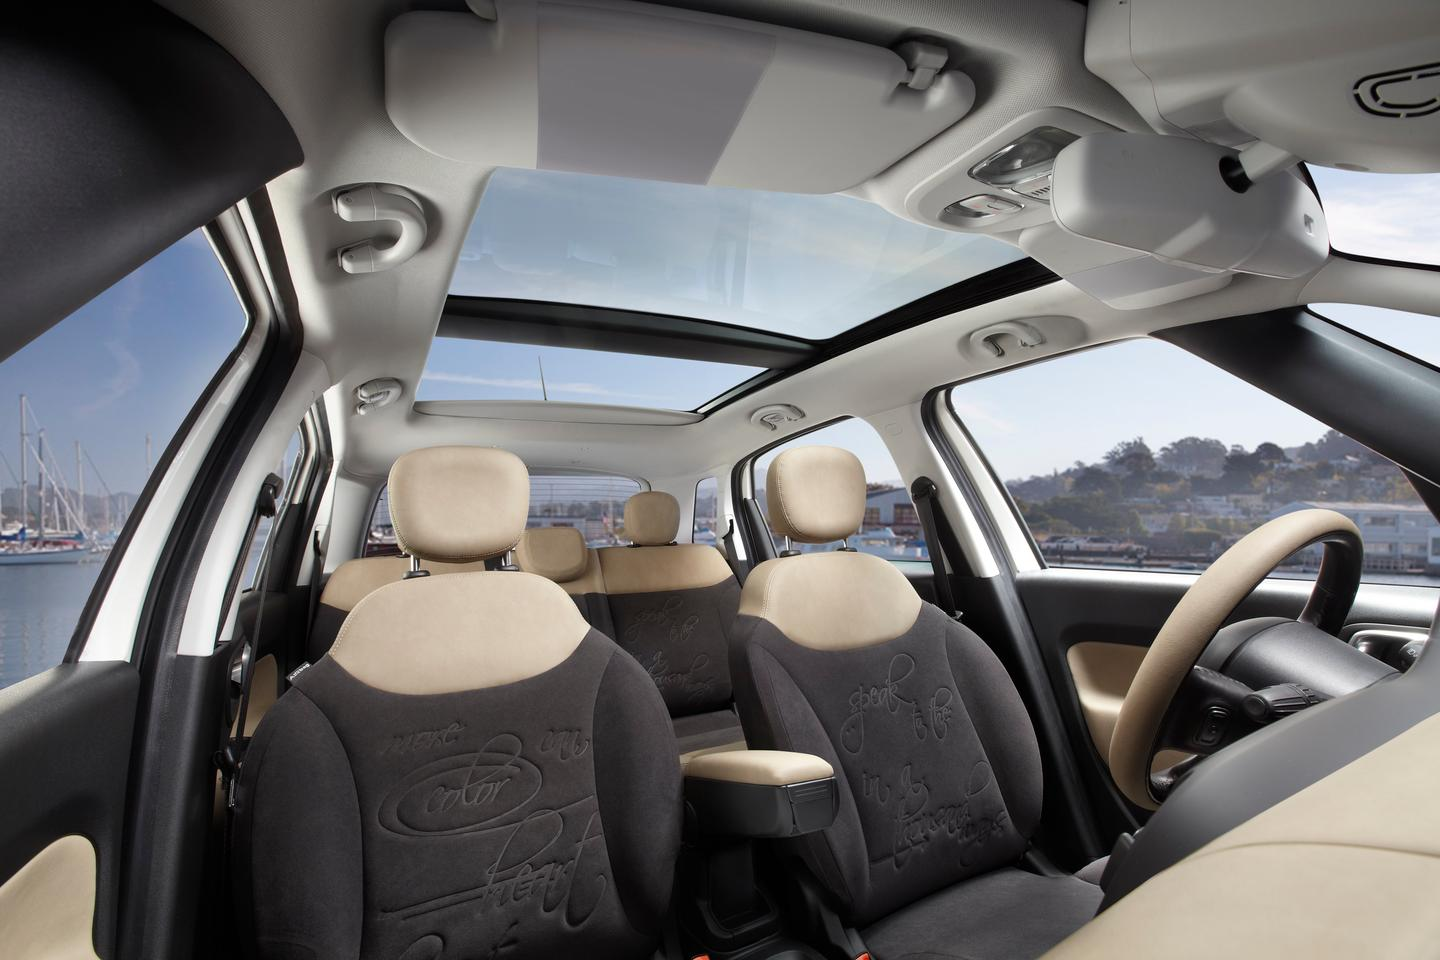 The nearly 360-degree view from the inside of the Fiat 500L